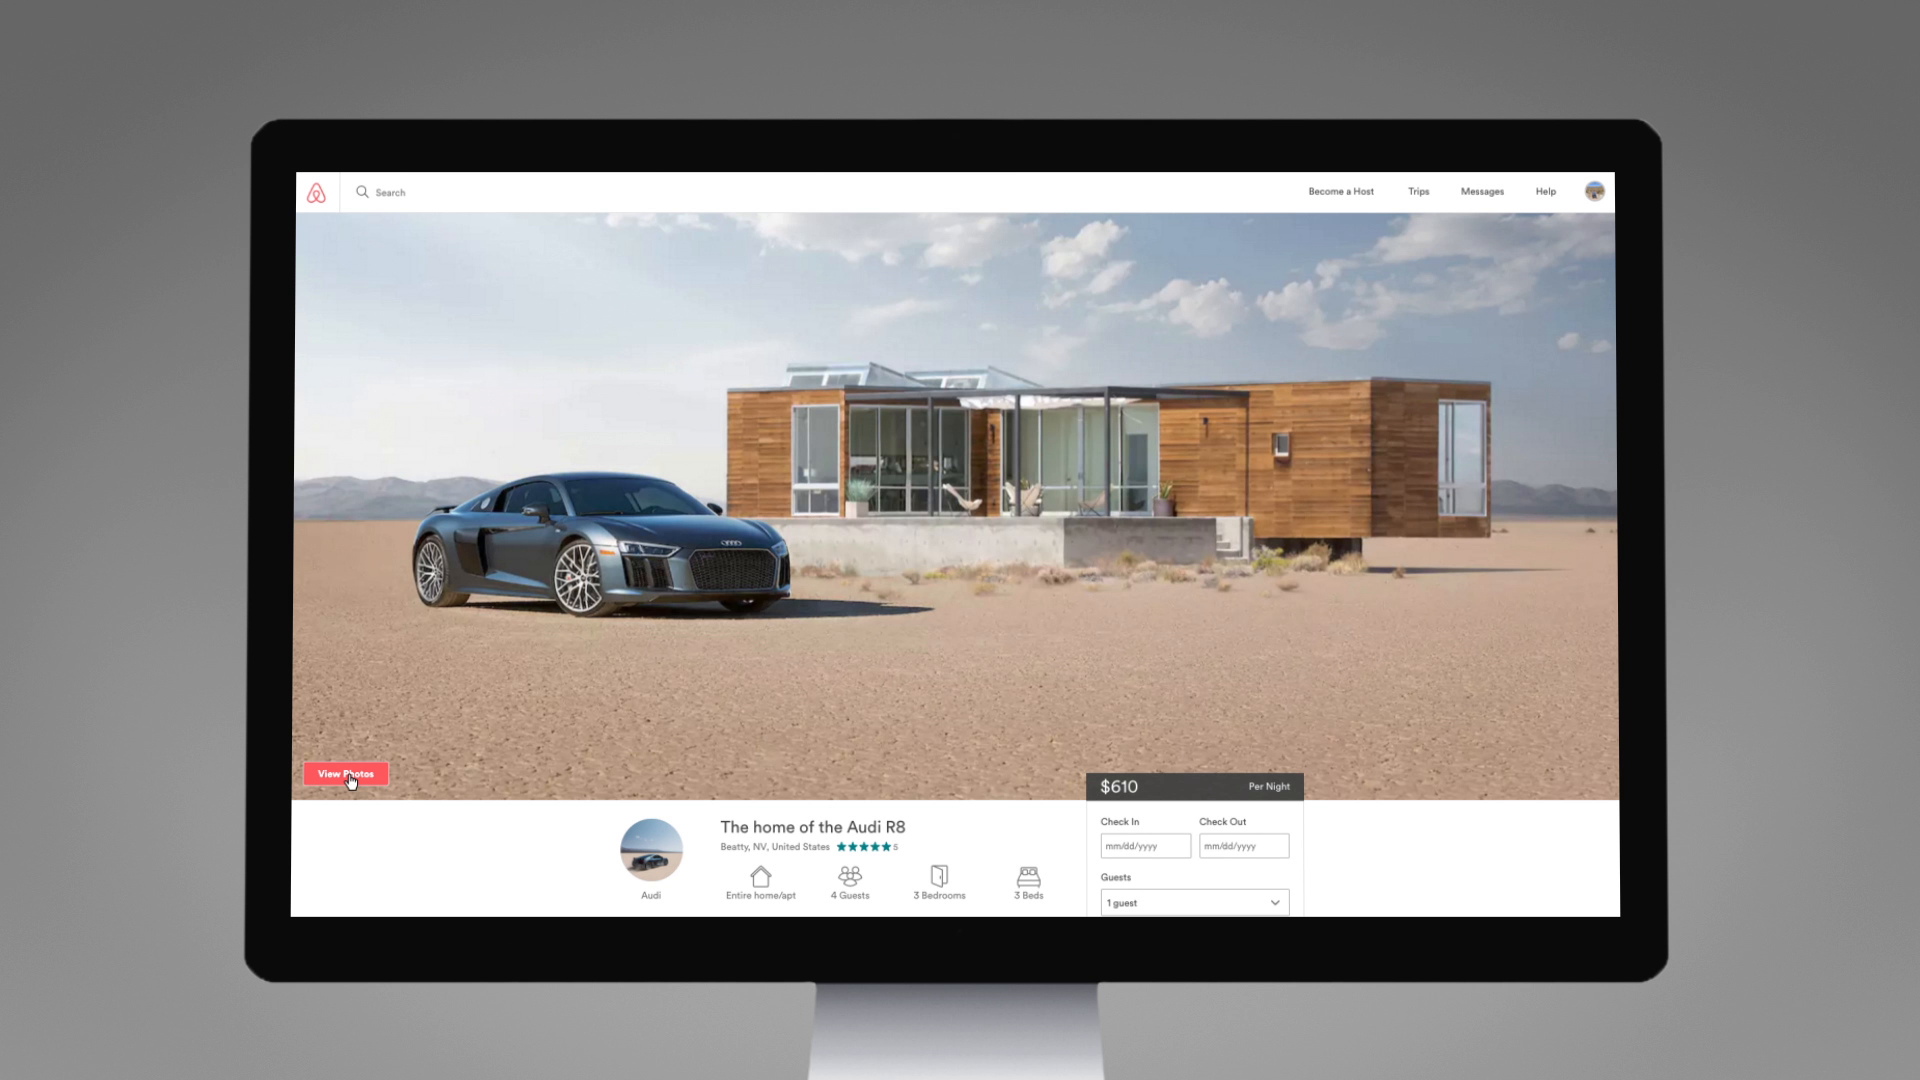 Thumbnail for Audi and Airbnb Live to Drive 2